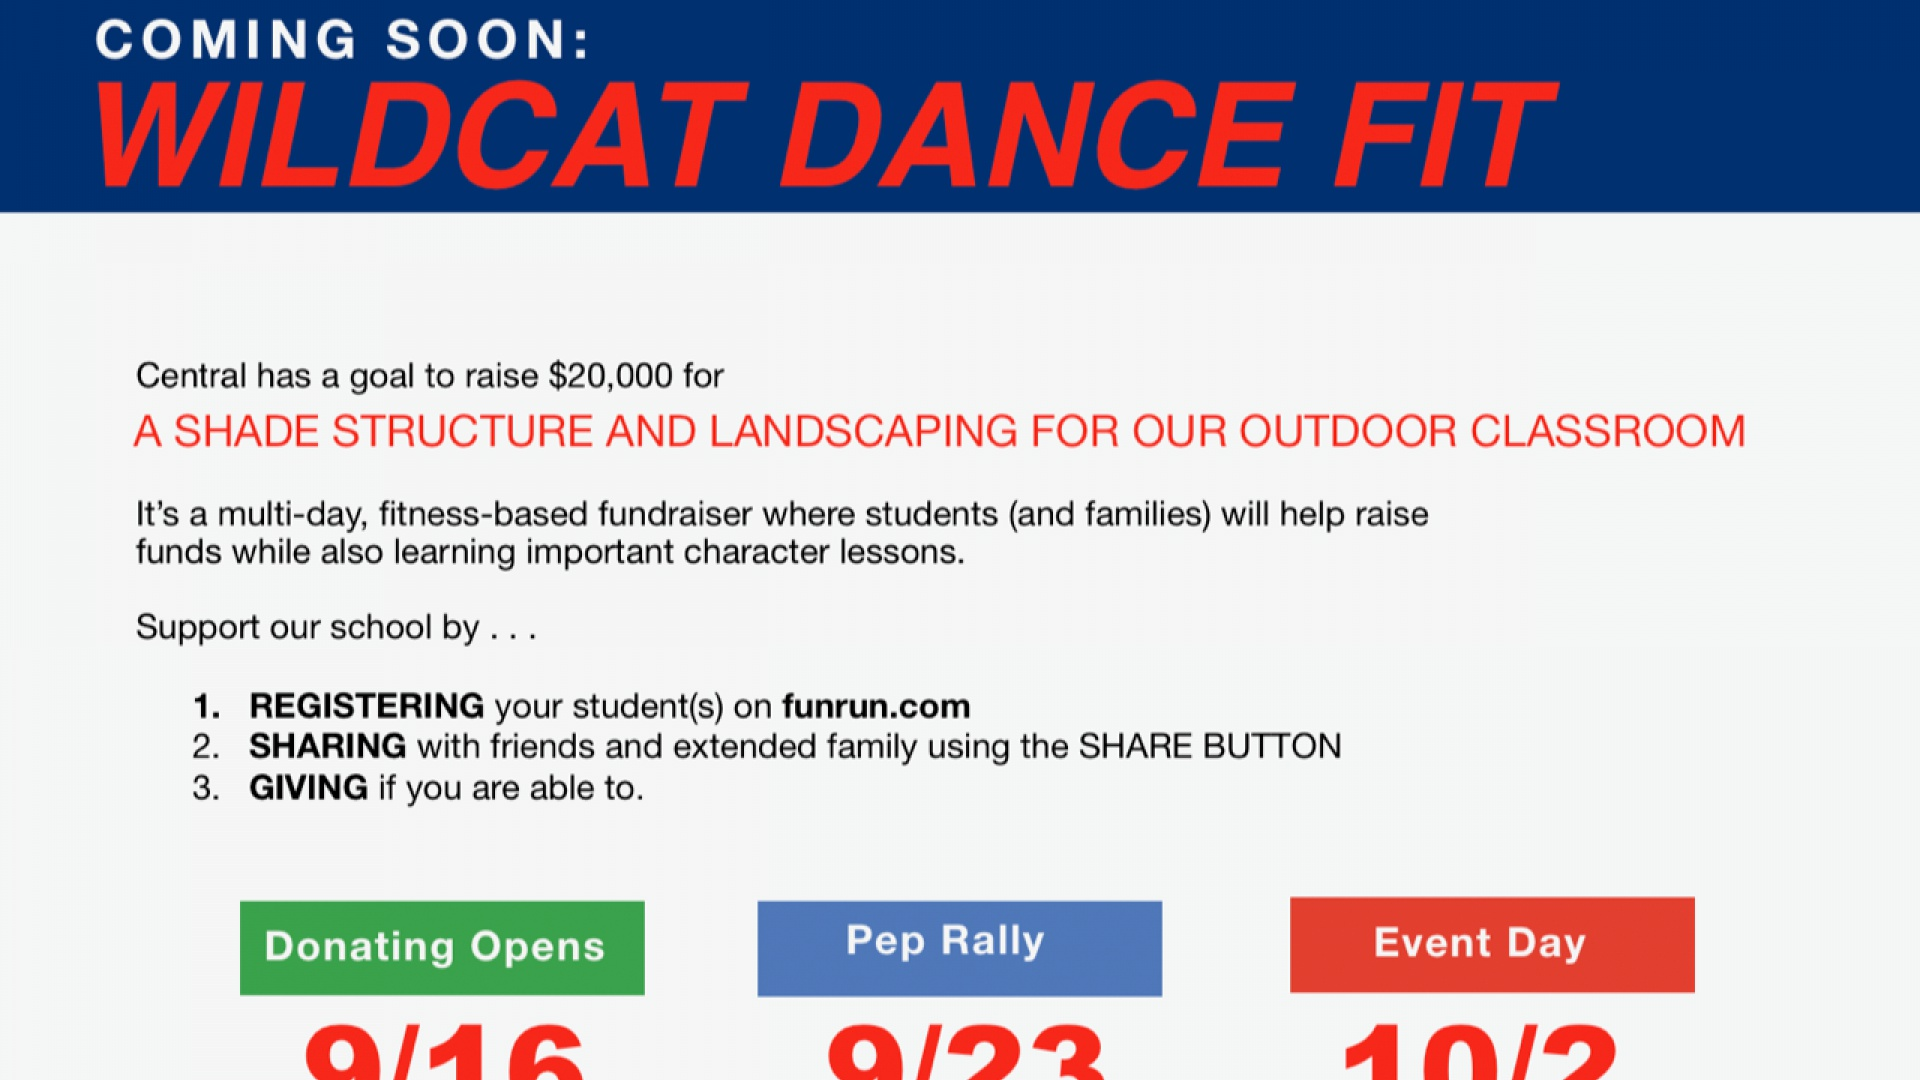 slidshow image - Wildcat Dance Fit (Boosterthon) Coming Soon! -